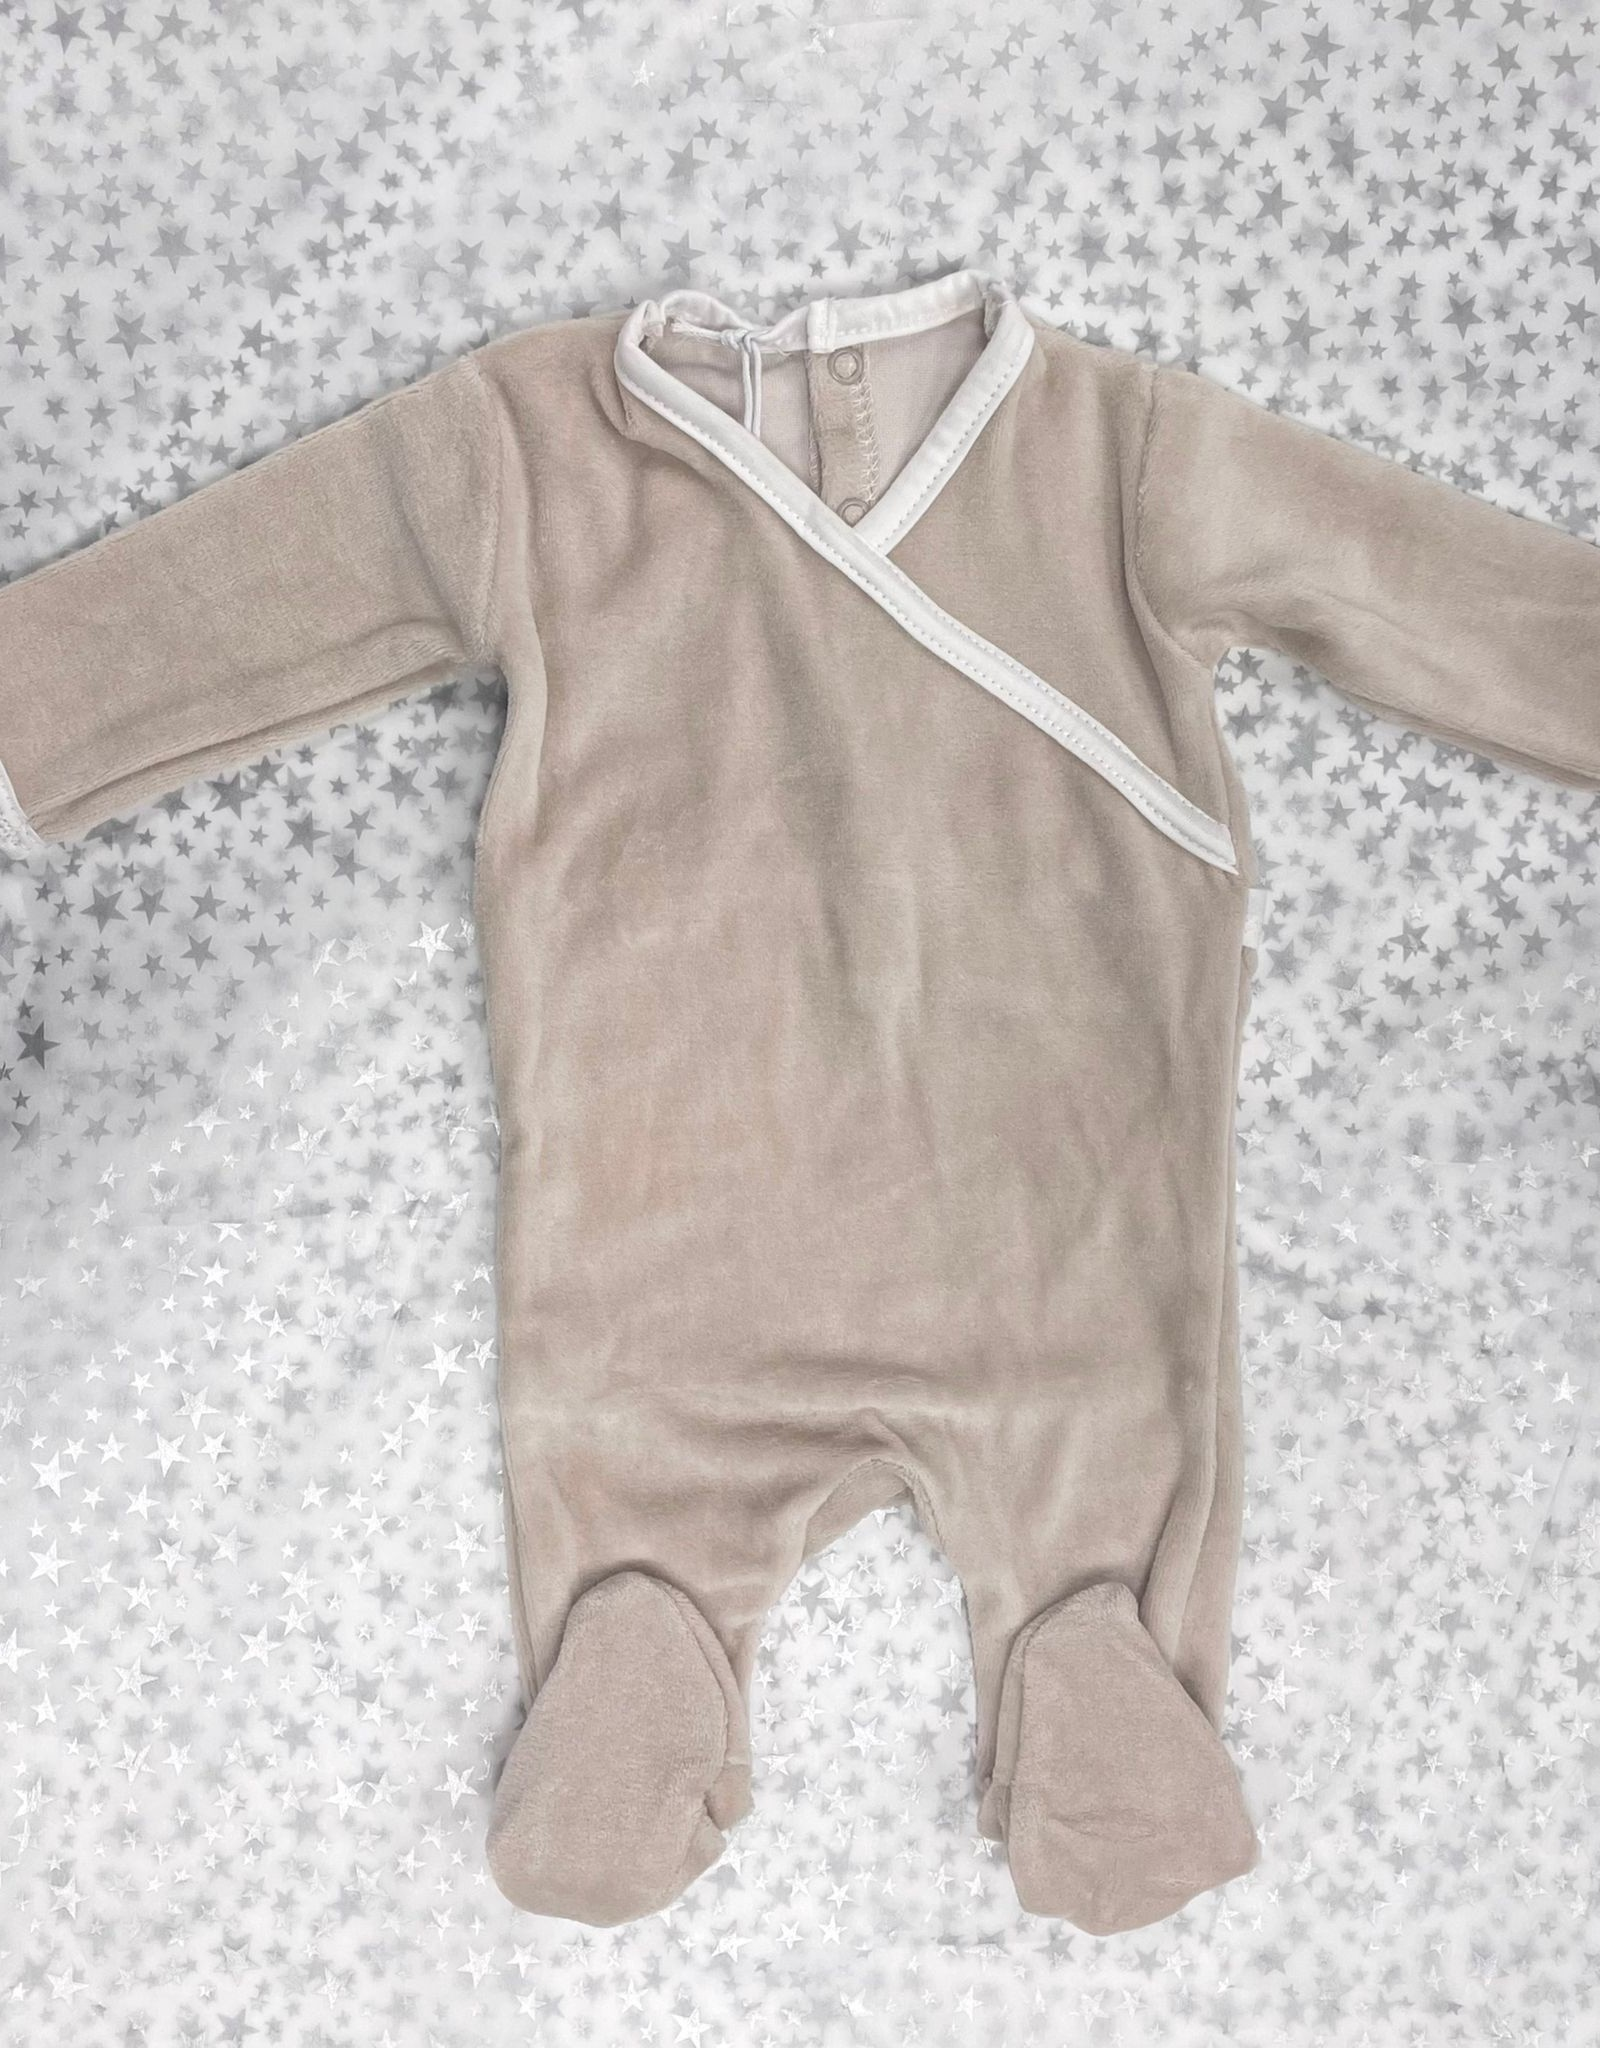 Ely's & Co ely's & co Velour Footie with Colored Trim